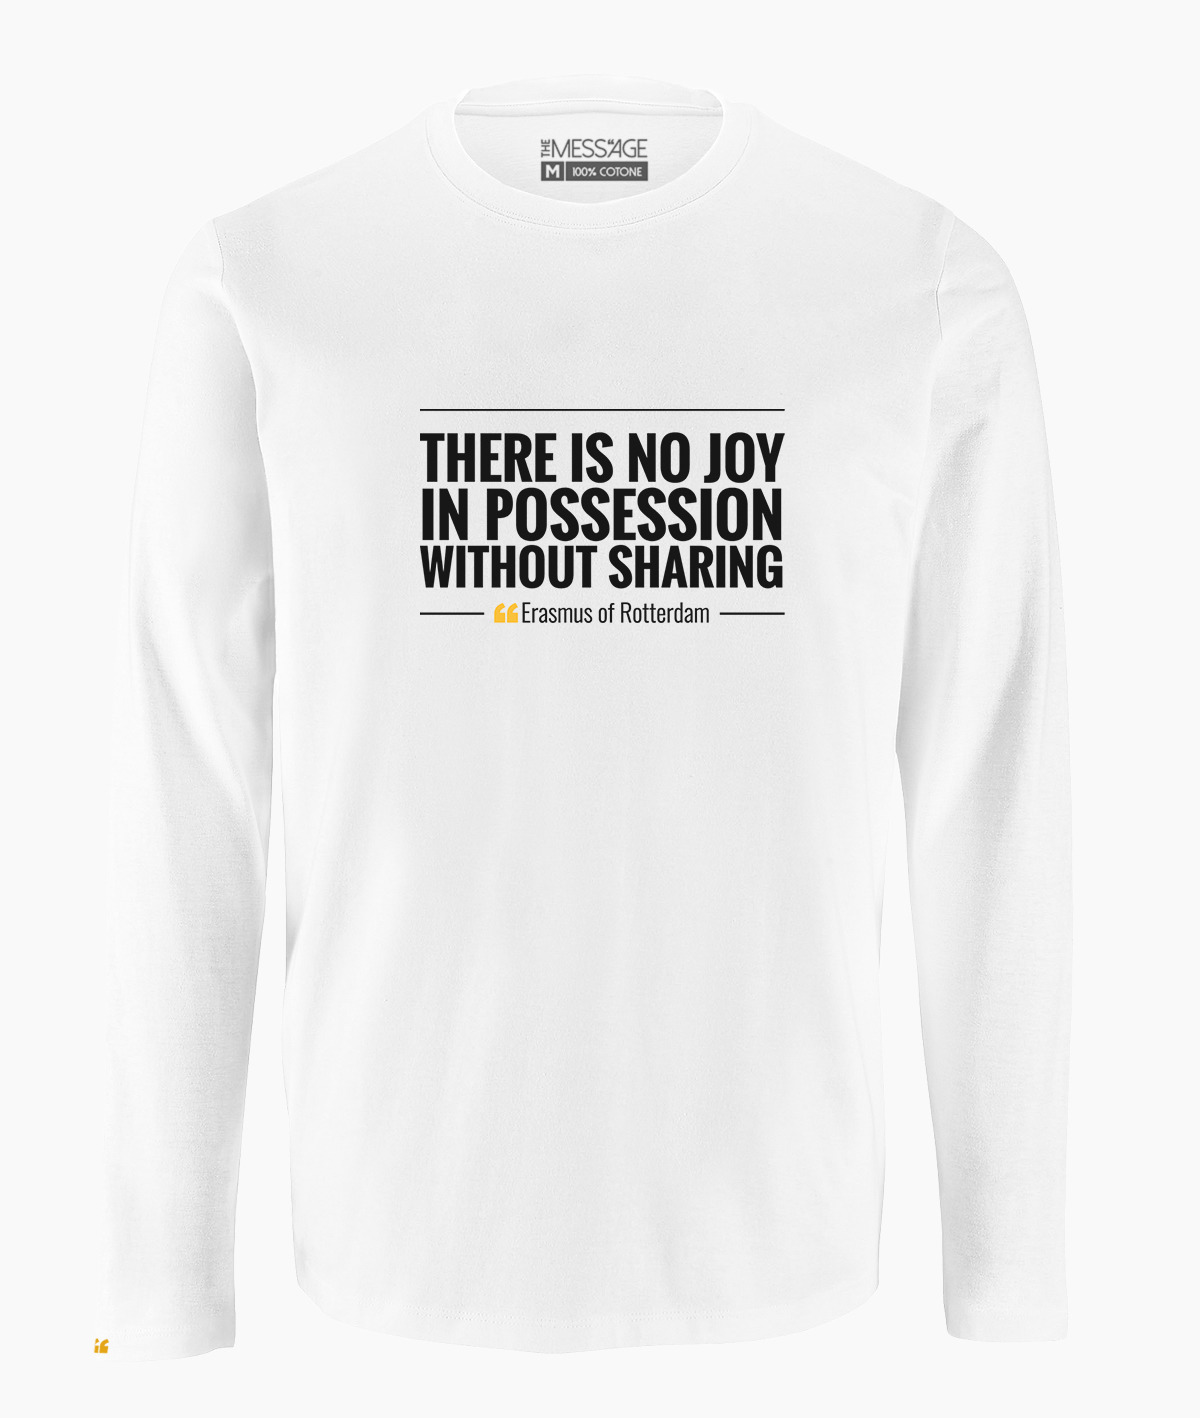 There is no joy in possession – Erasmus of Rotterdam T-Shirt